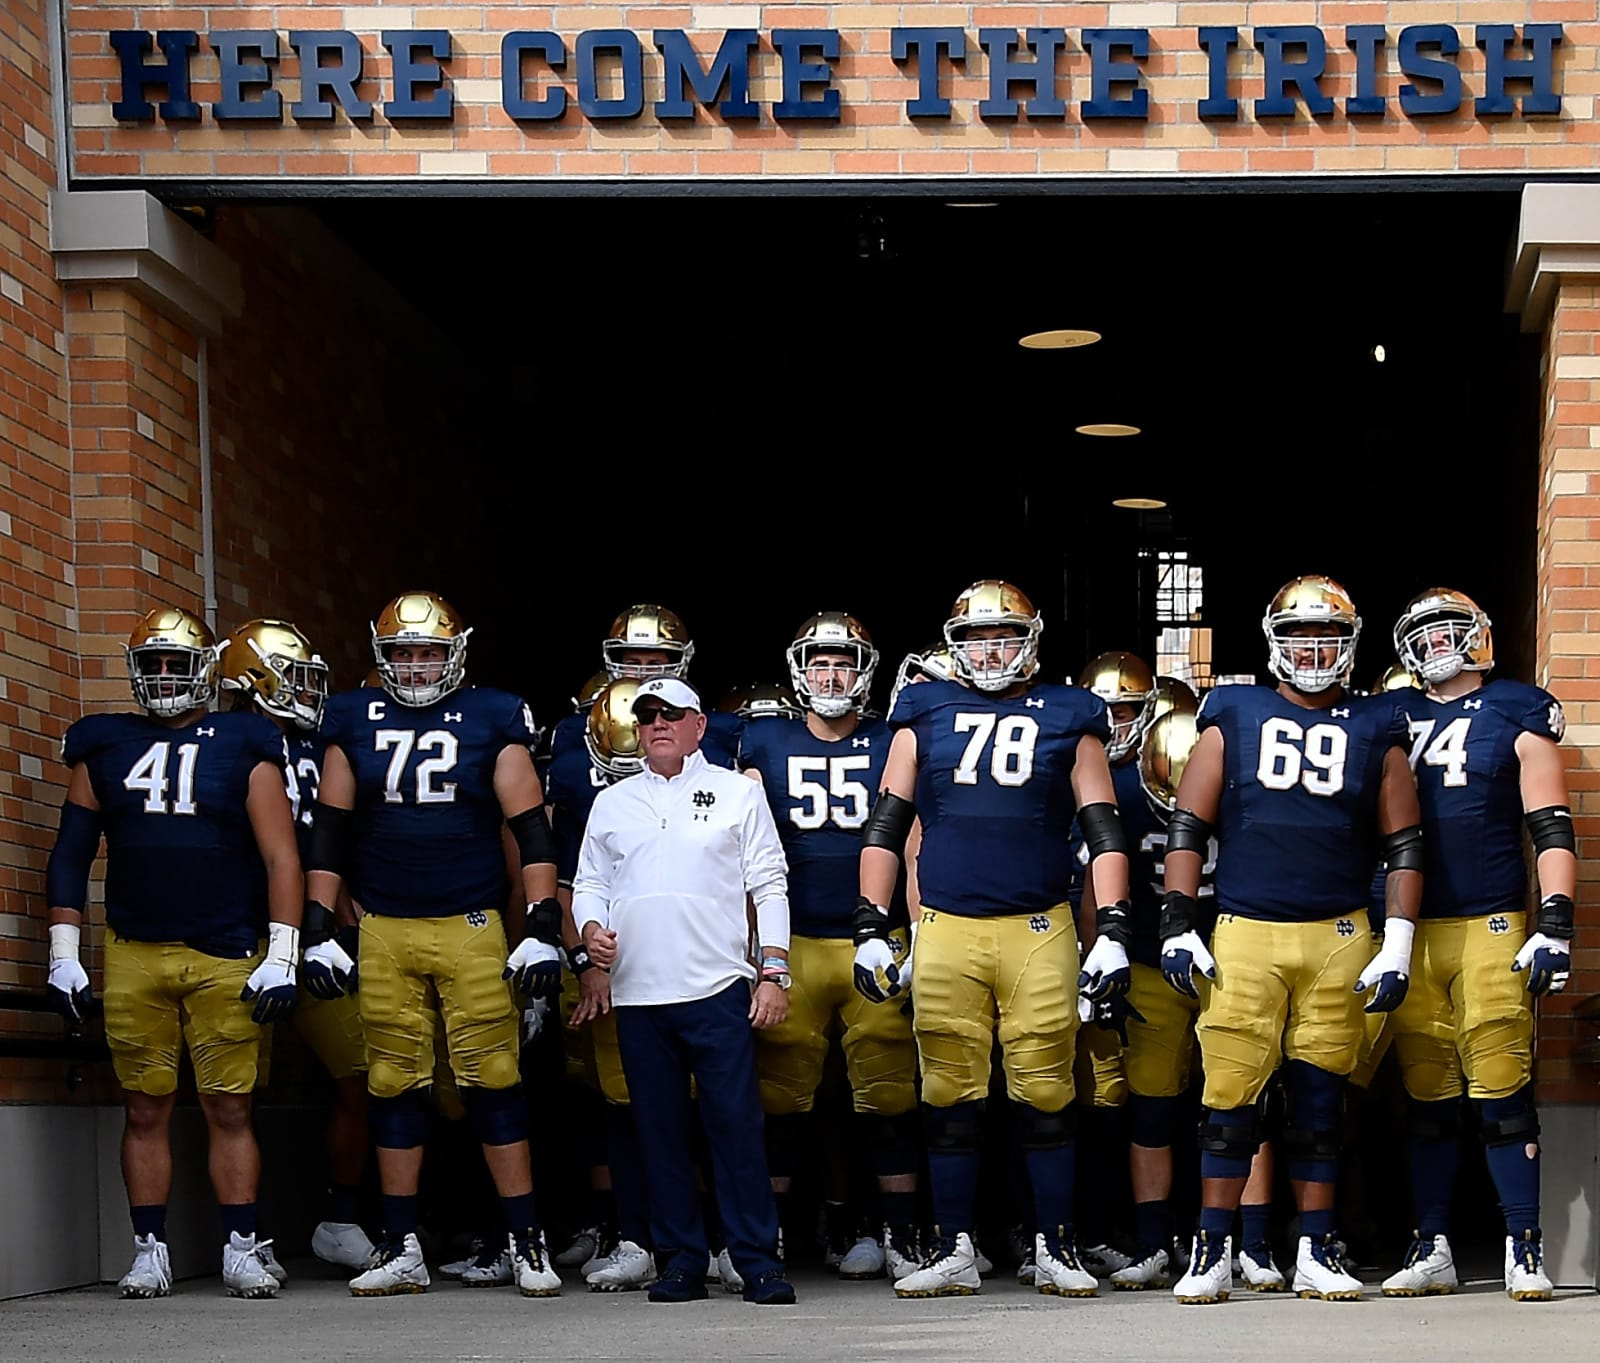 Notre Dame Football